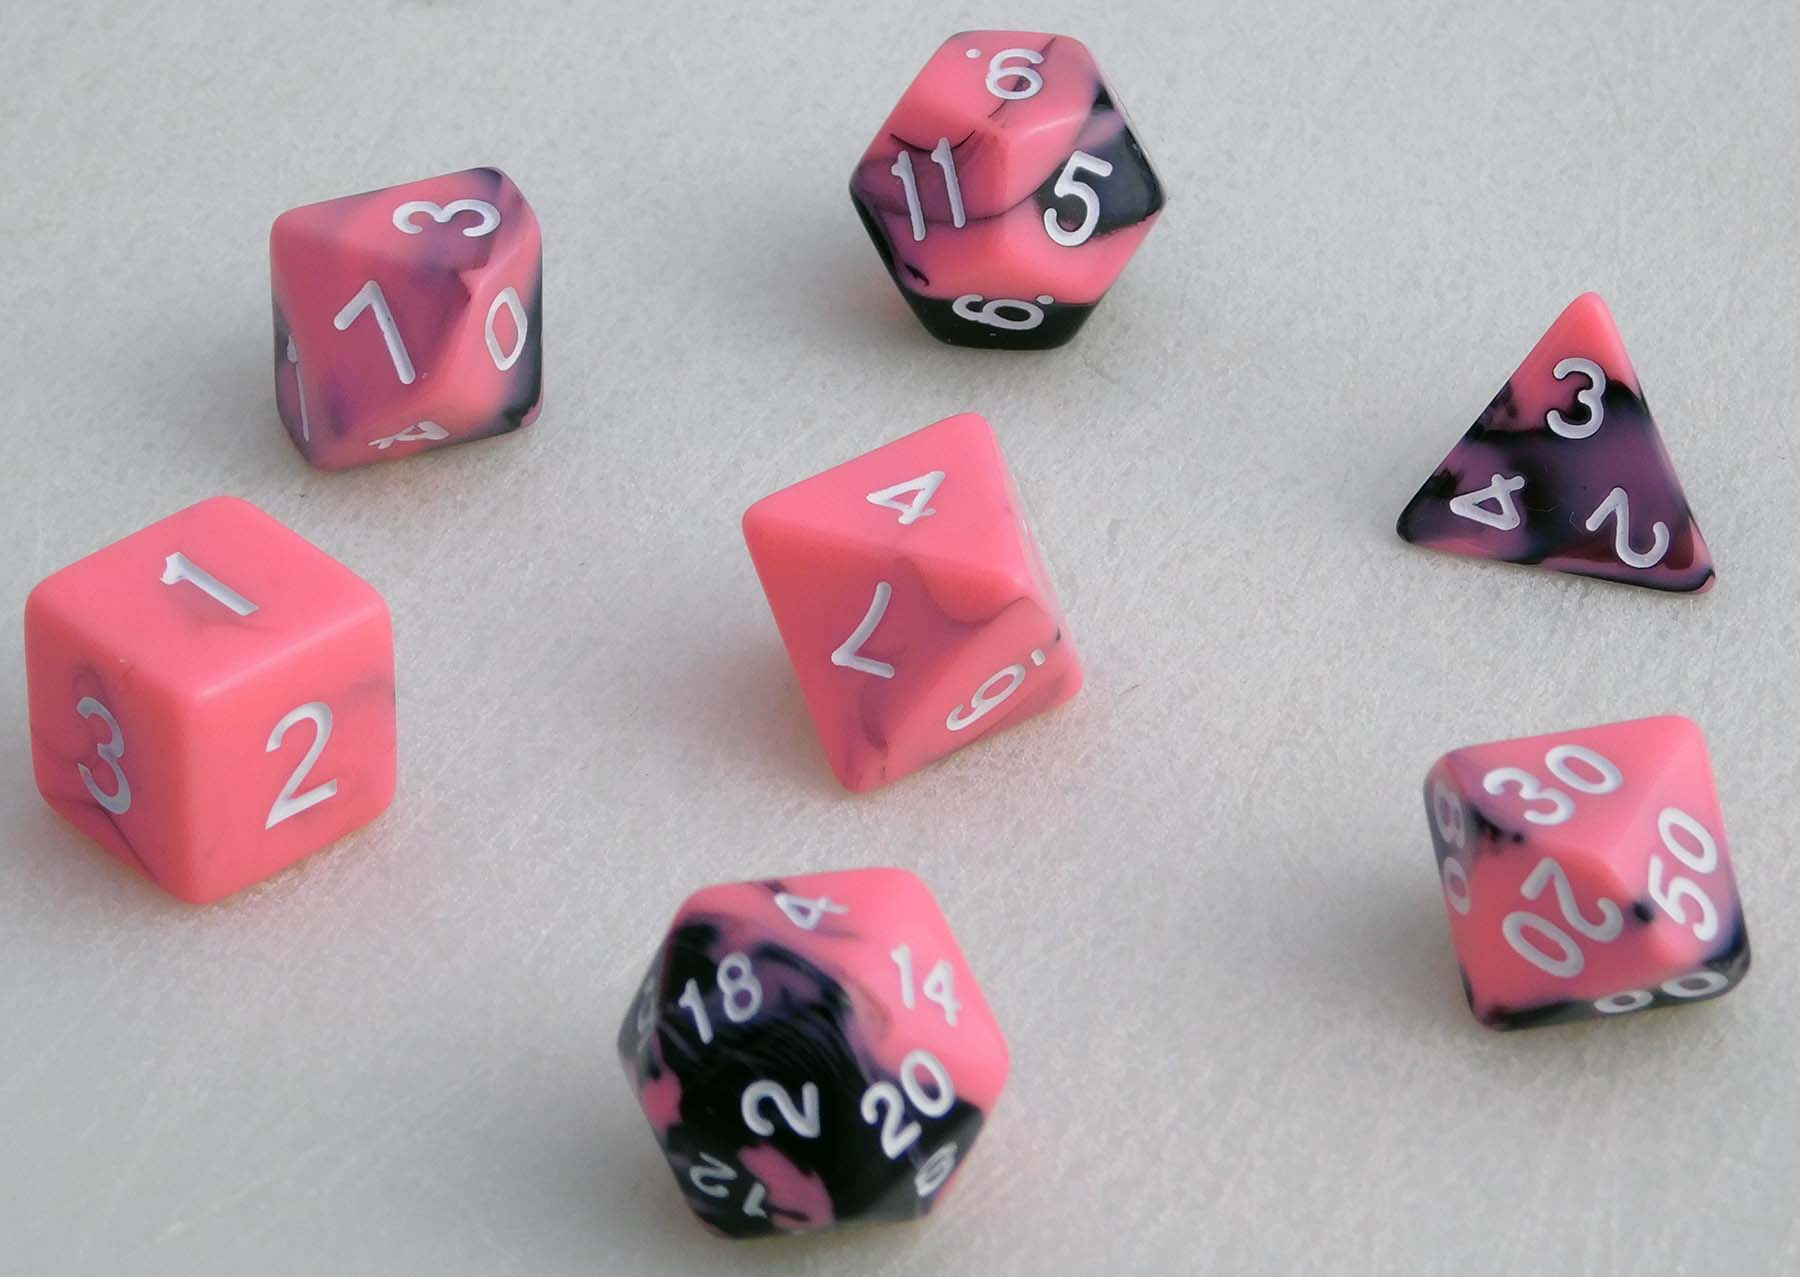 Fancy Marbled Dice Set - Pink/Black